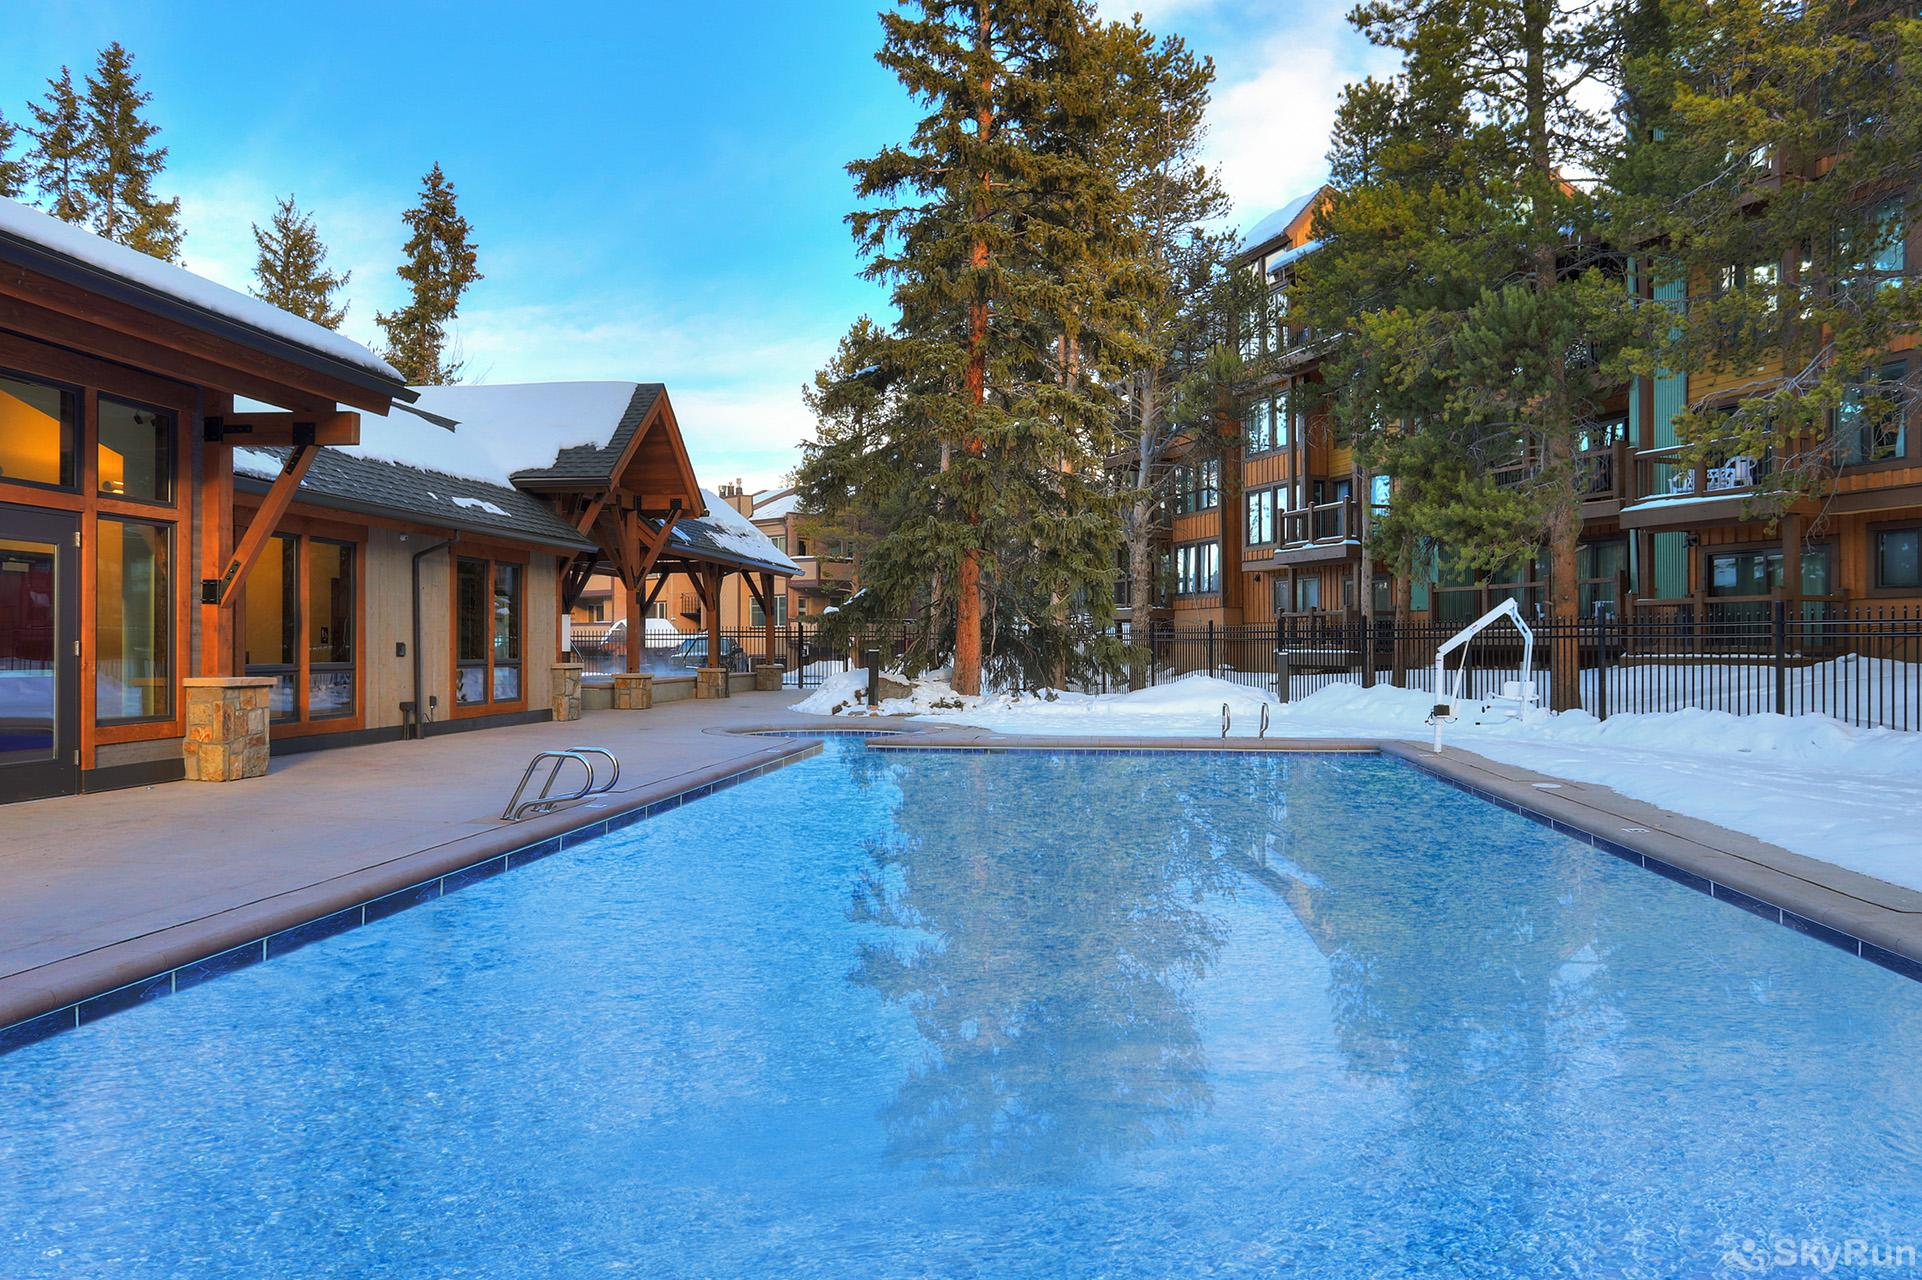 The Lift C212 Columbine Pool Complex outdoor heated pool